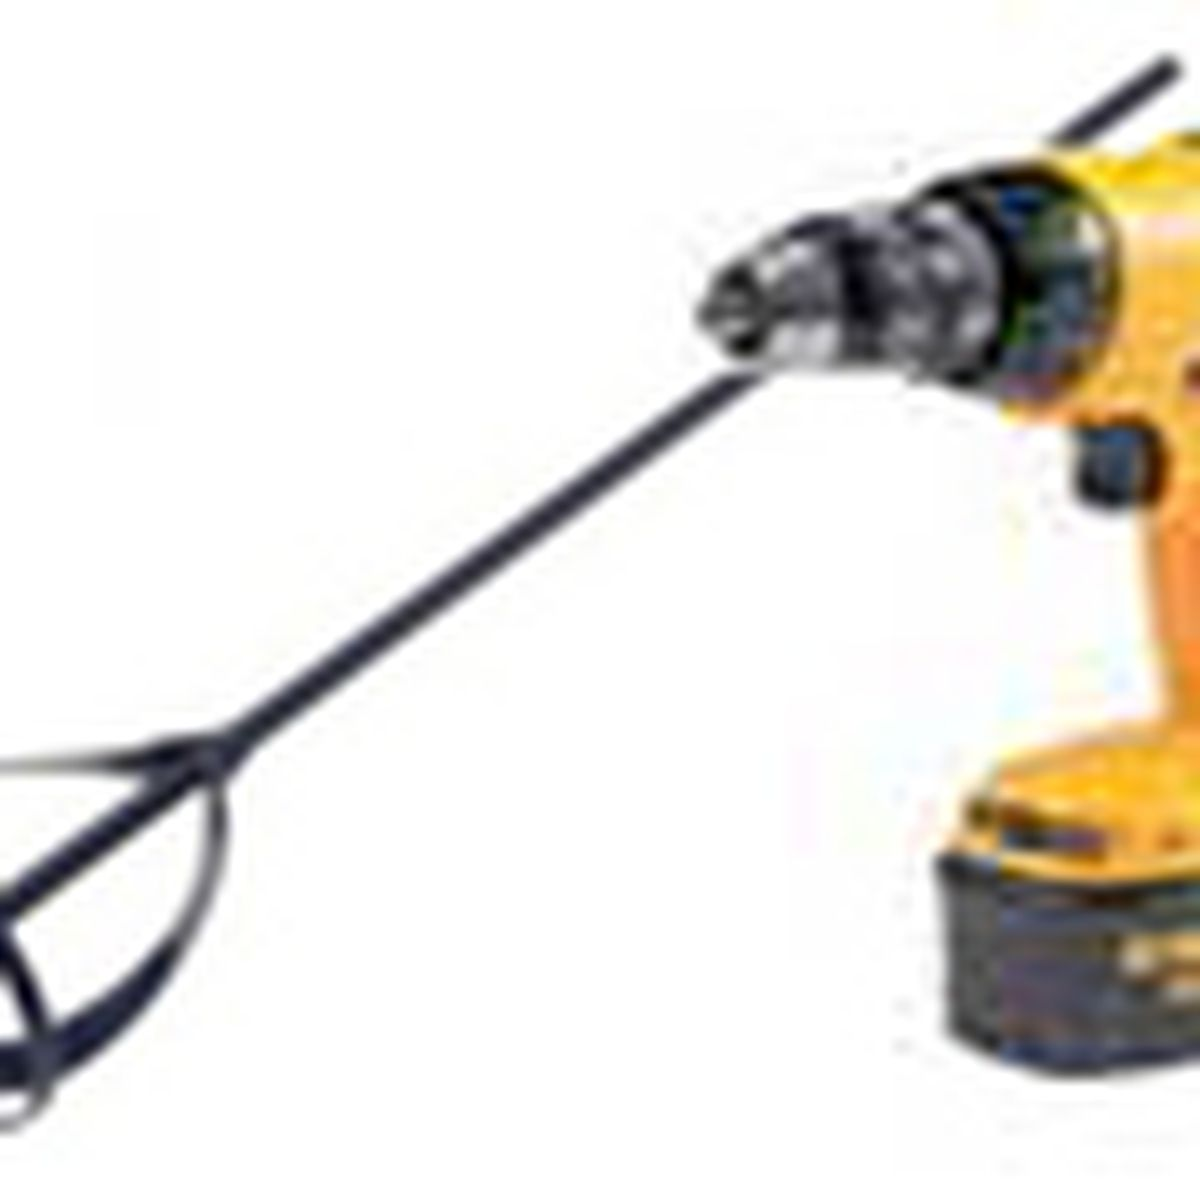 Drill/Driver With Mixing Paddle